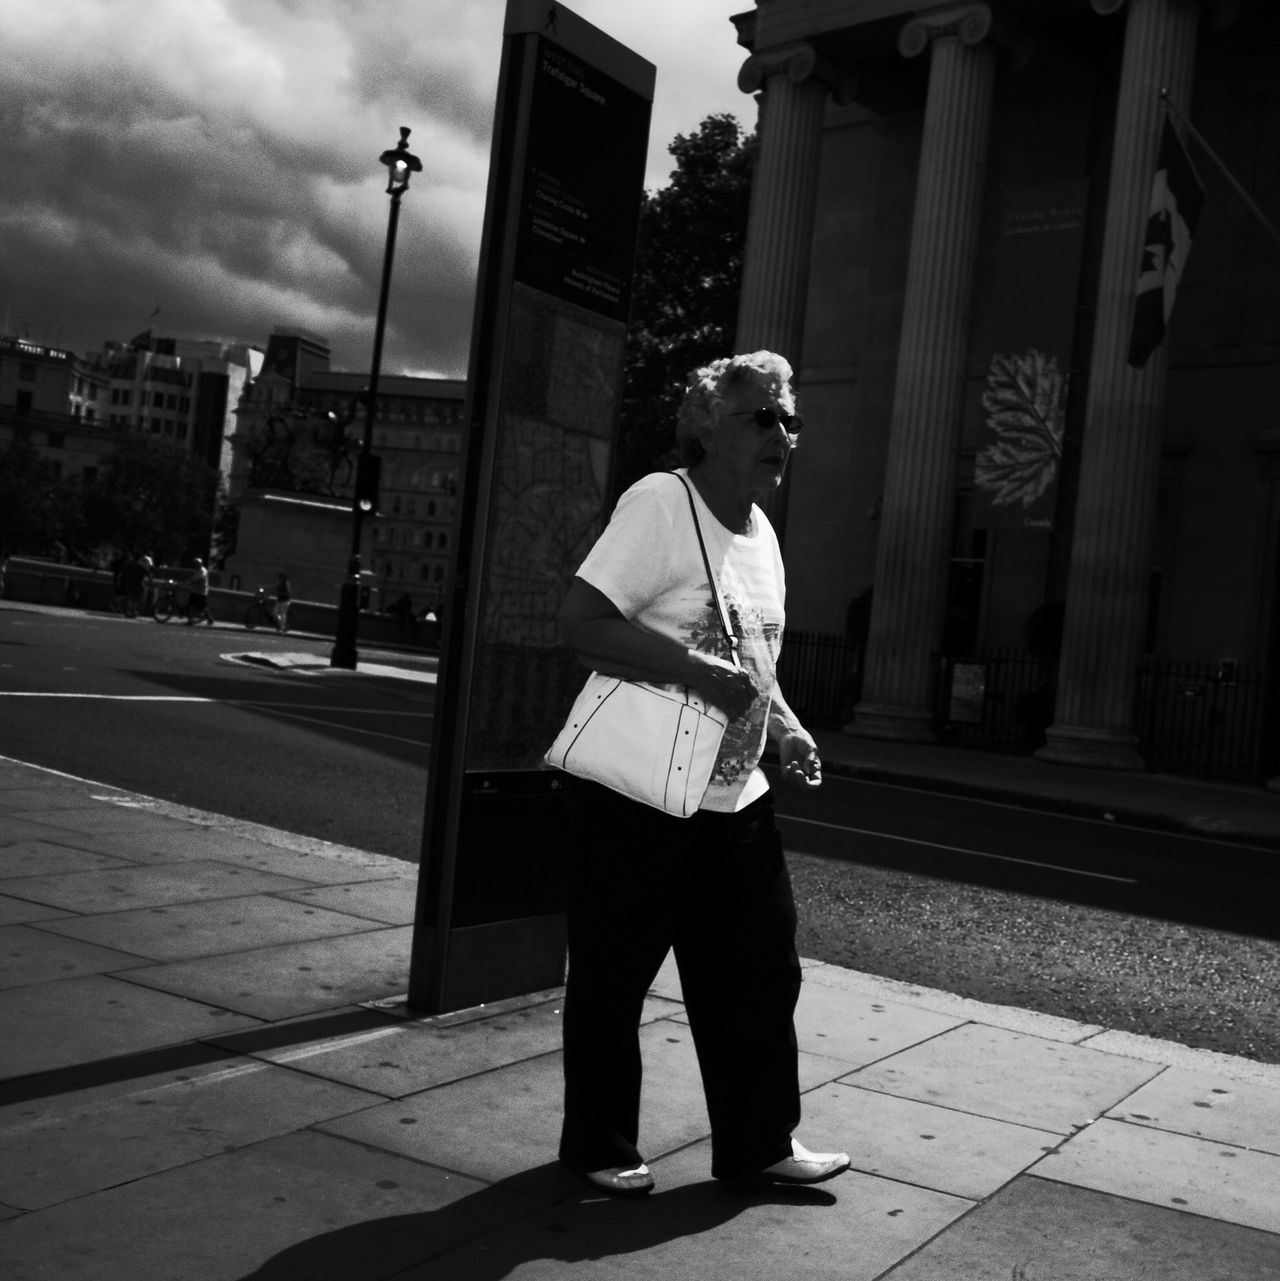 Black And White Street Life Monochrome Street London Streetphotography_bw NEM Black&white Blancoynegro Streetphoto_bw Streettogs Ricoh Gr Flaneur Blackandwhite Streetphotography Walking Around AMPt - Street